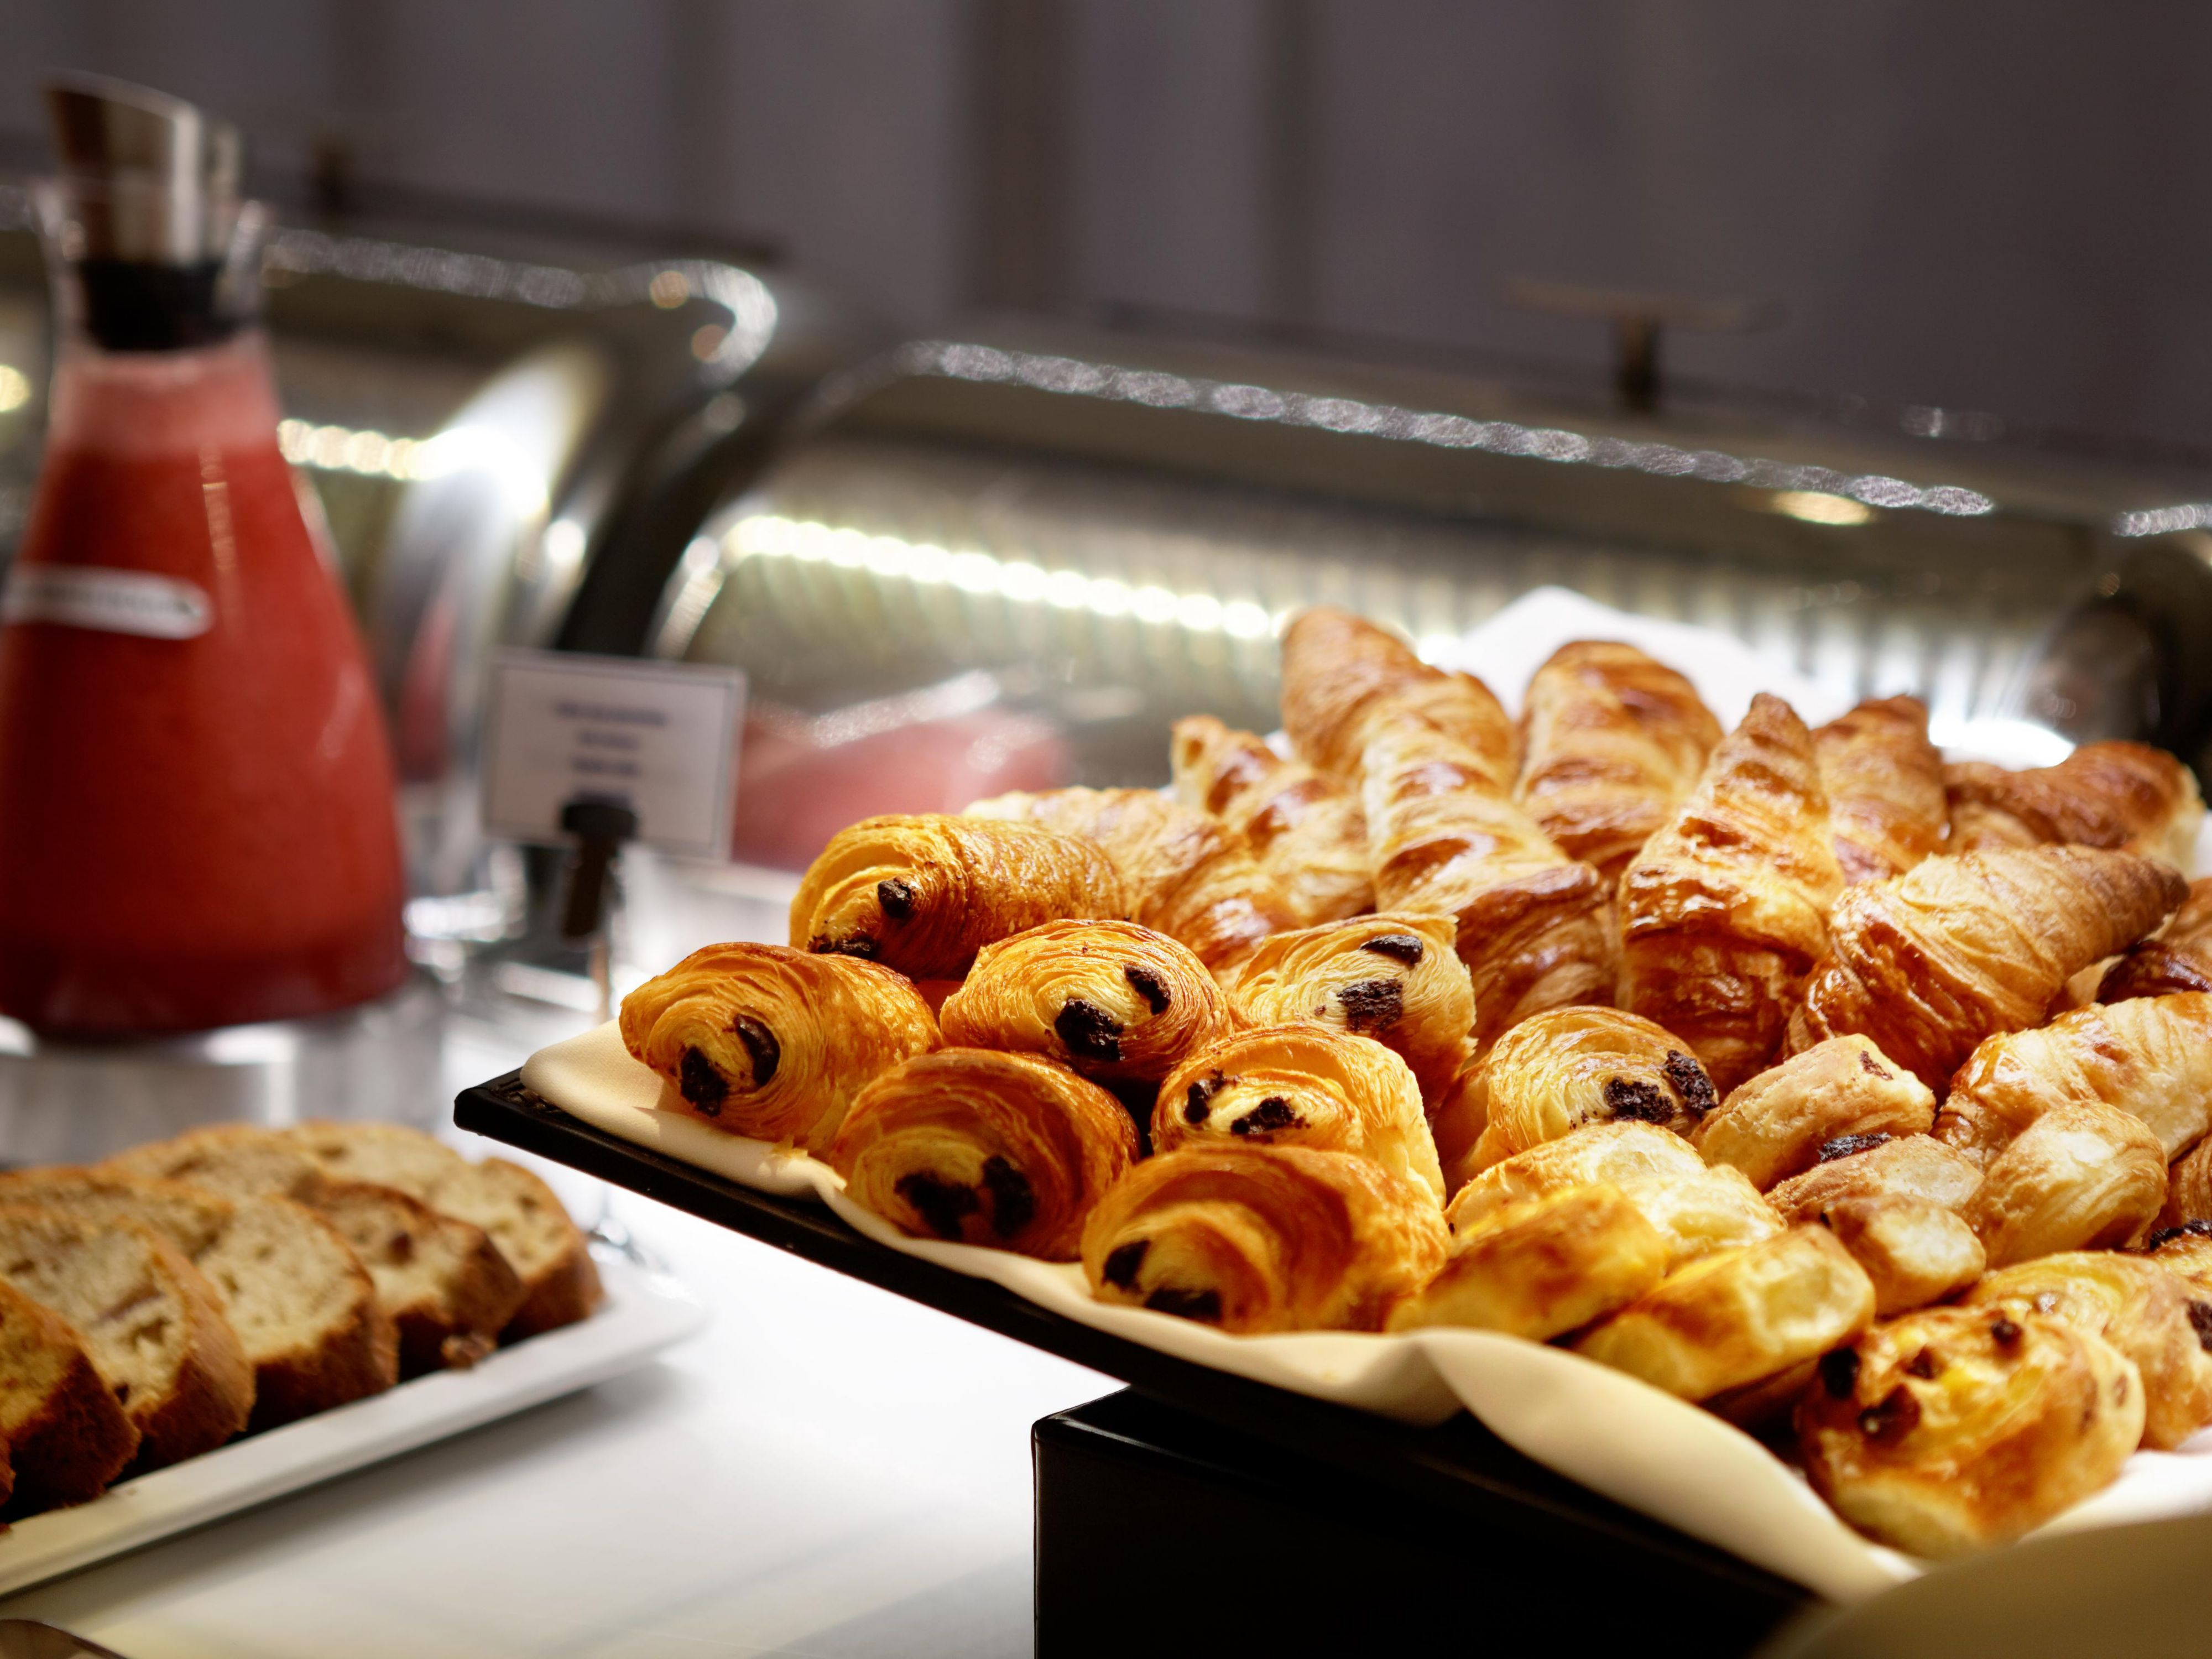 Full Buffet Breakfast with Fresh Pastries